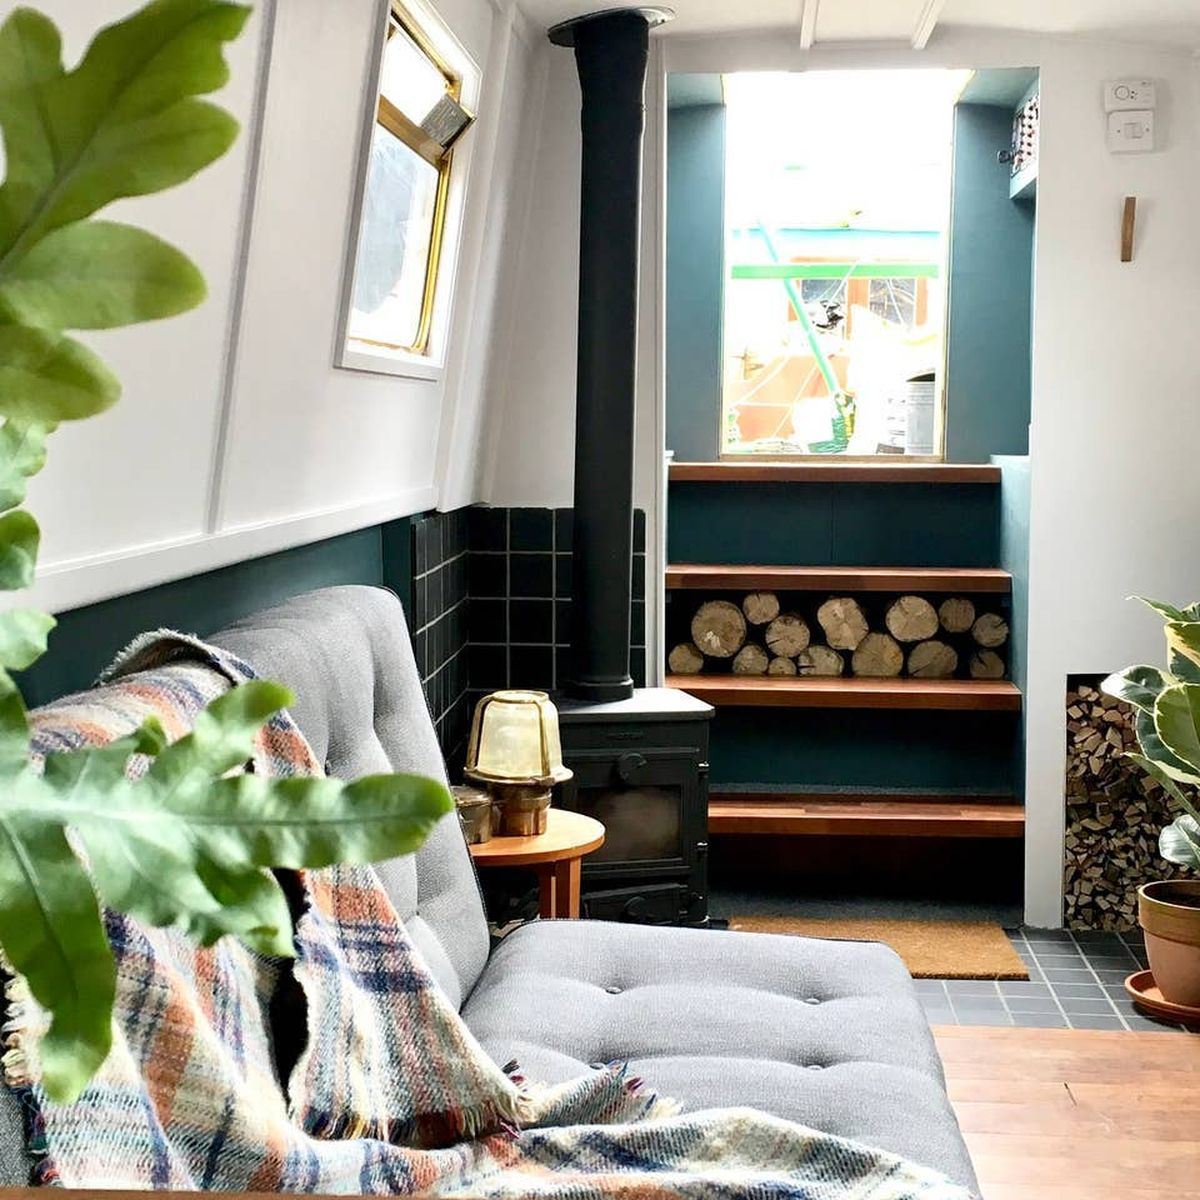 13 Best Airbnb Boats 2019 - Houseboat and Yacht Rentals to